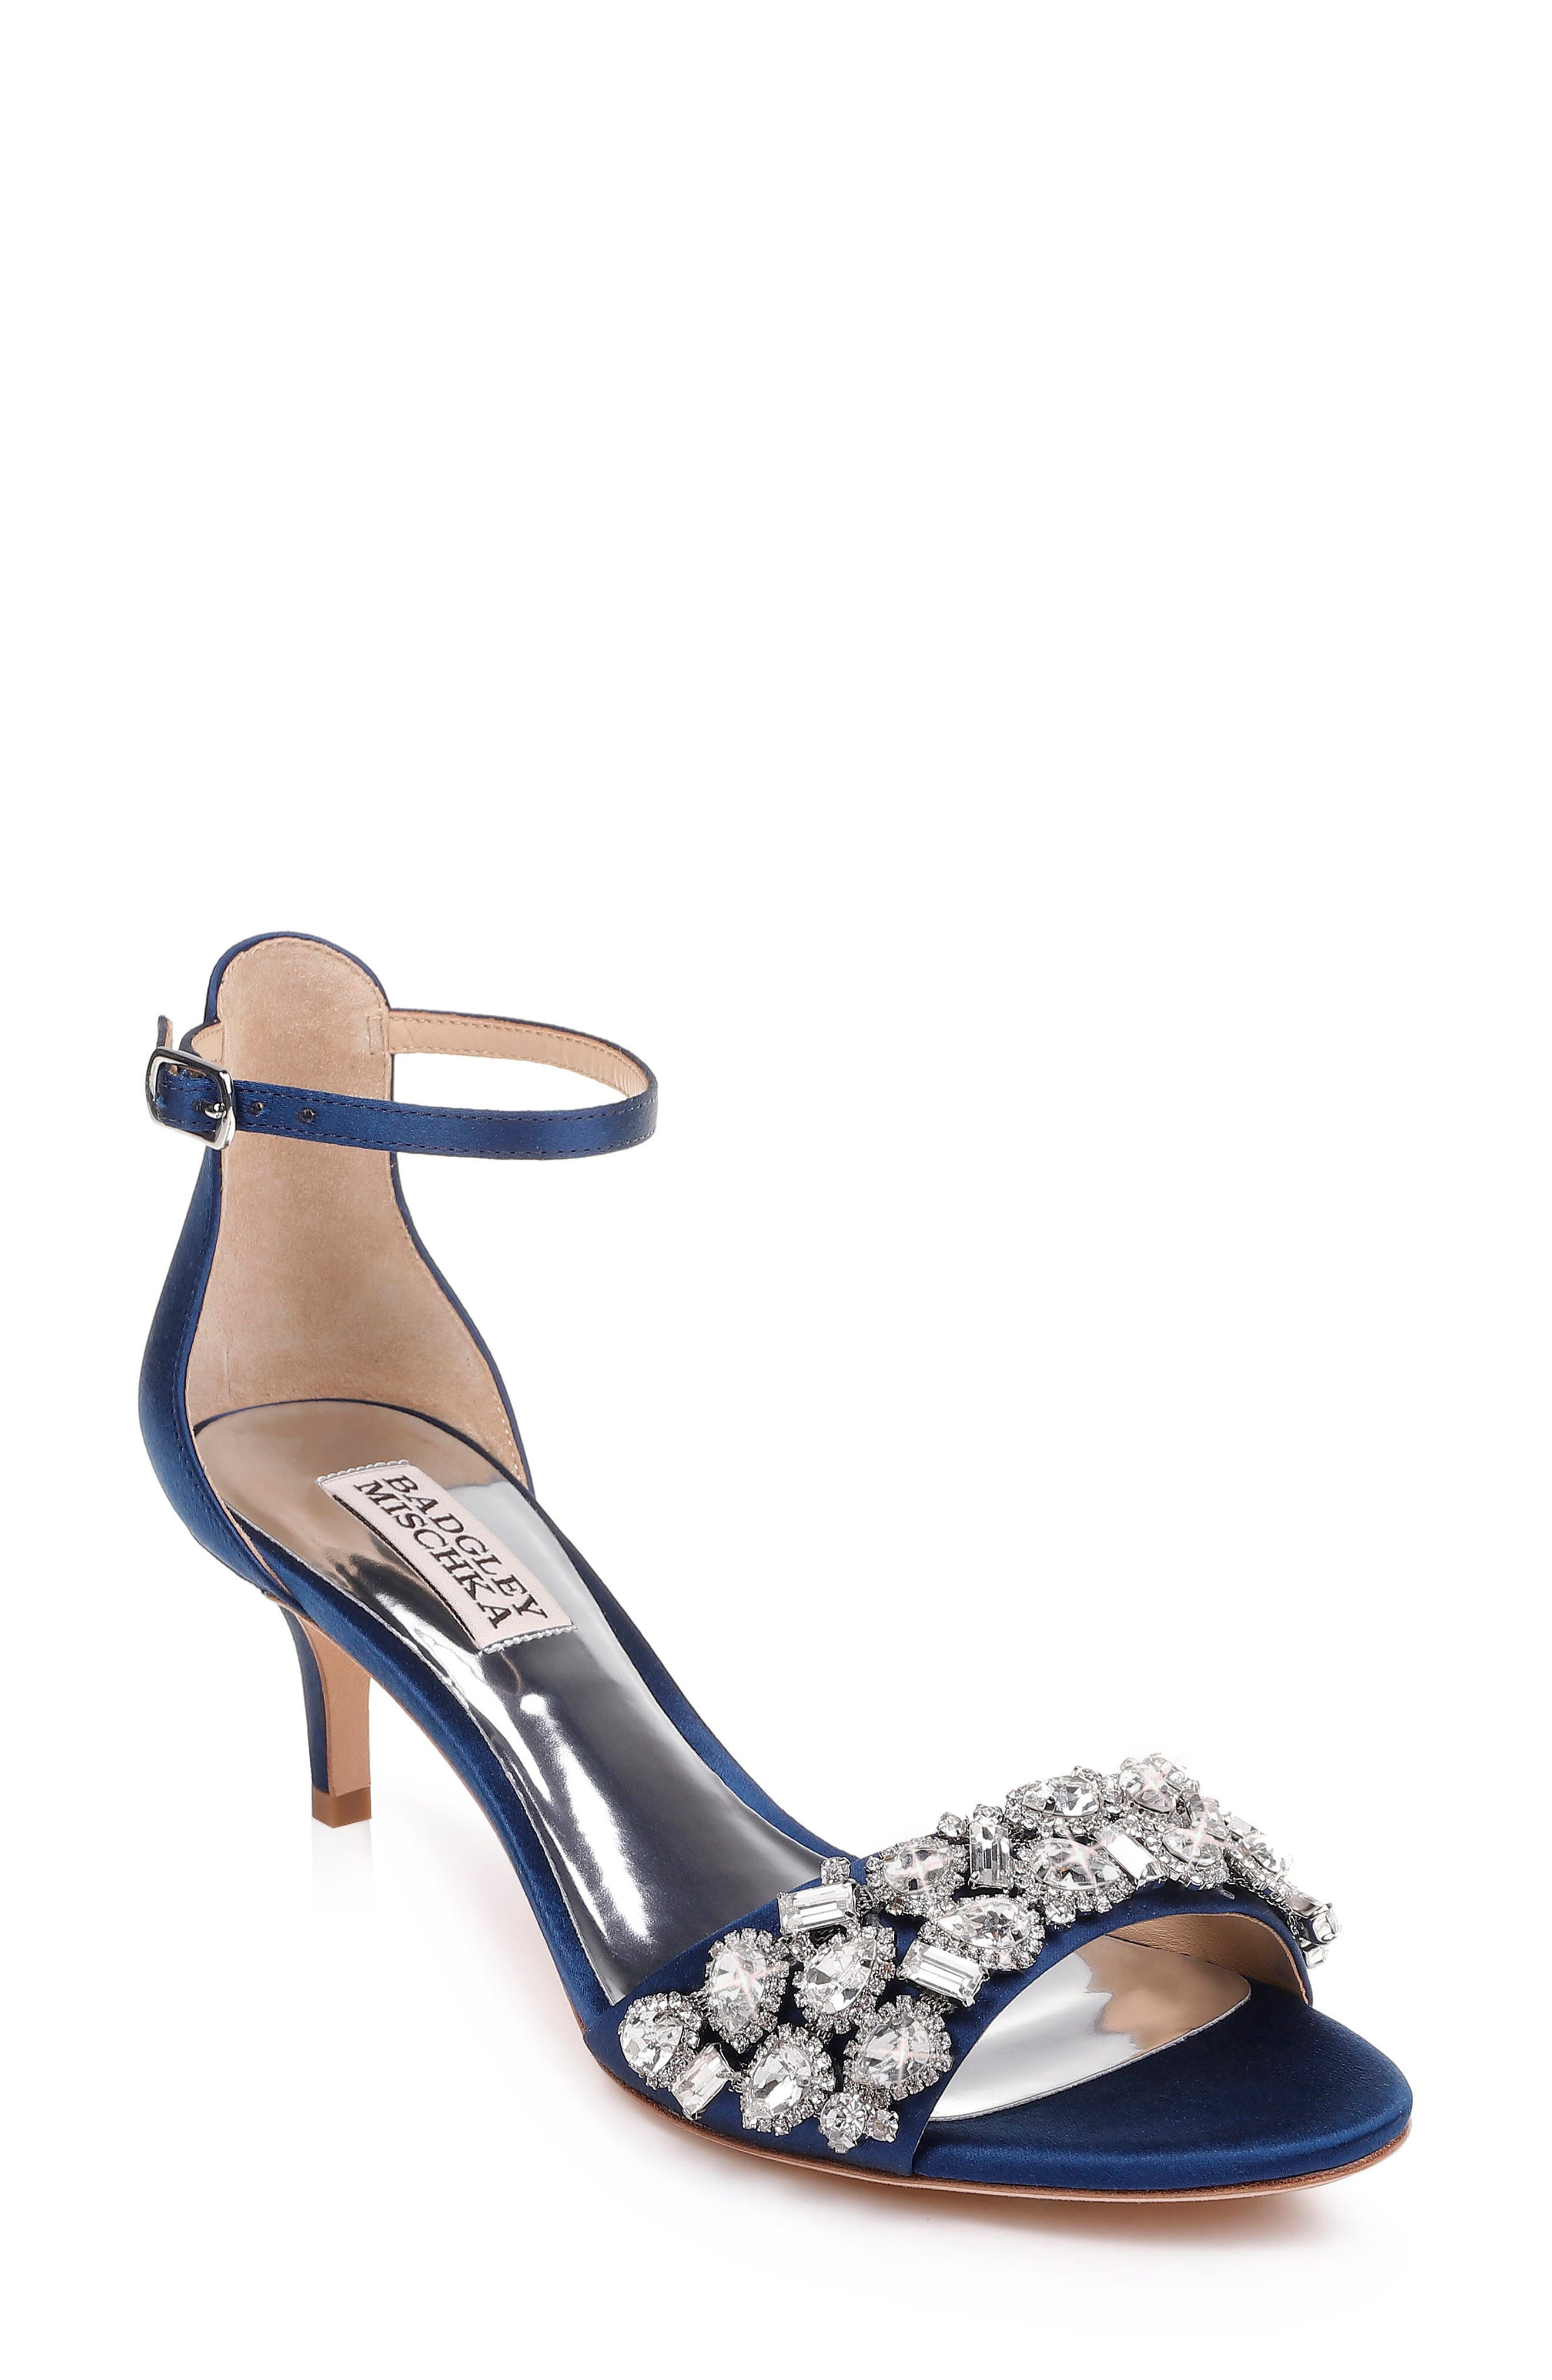 Badgley Mischka Lara Crystal Embellished Sandal- Blue